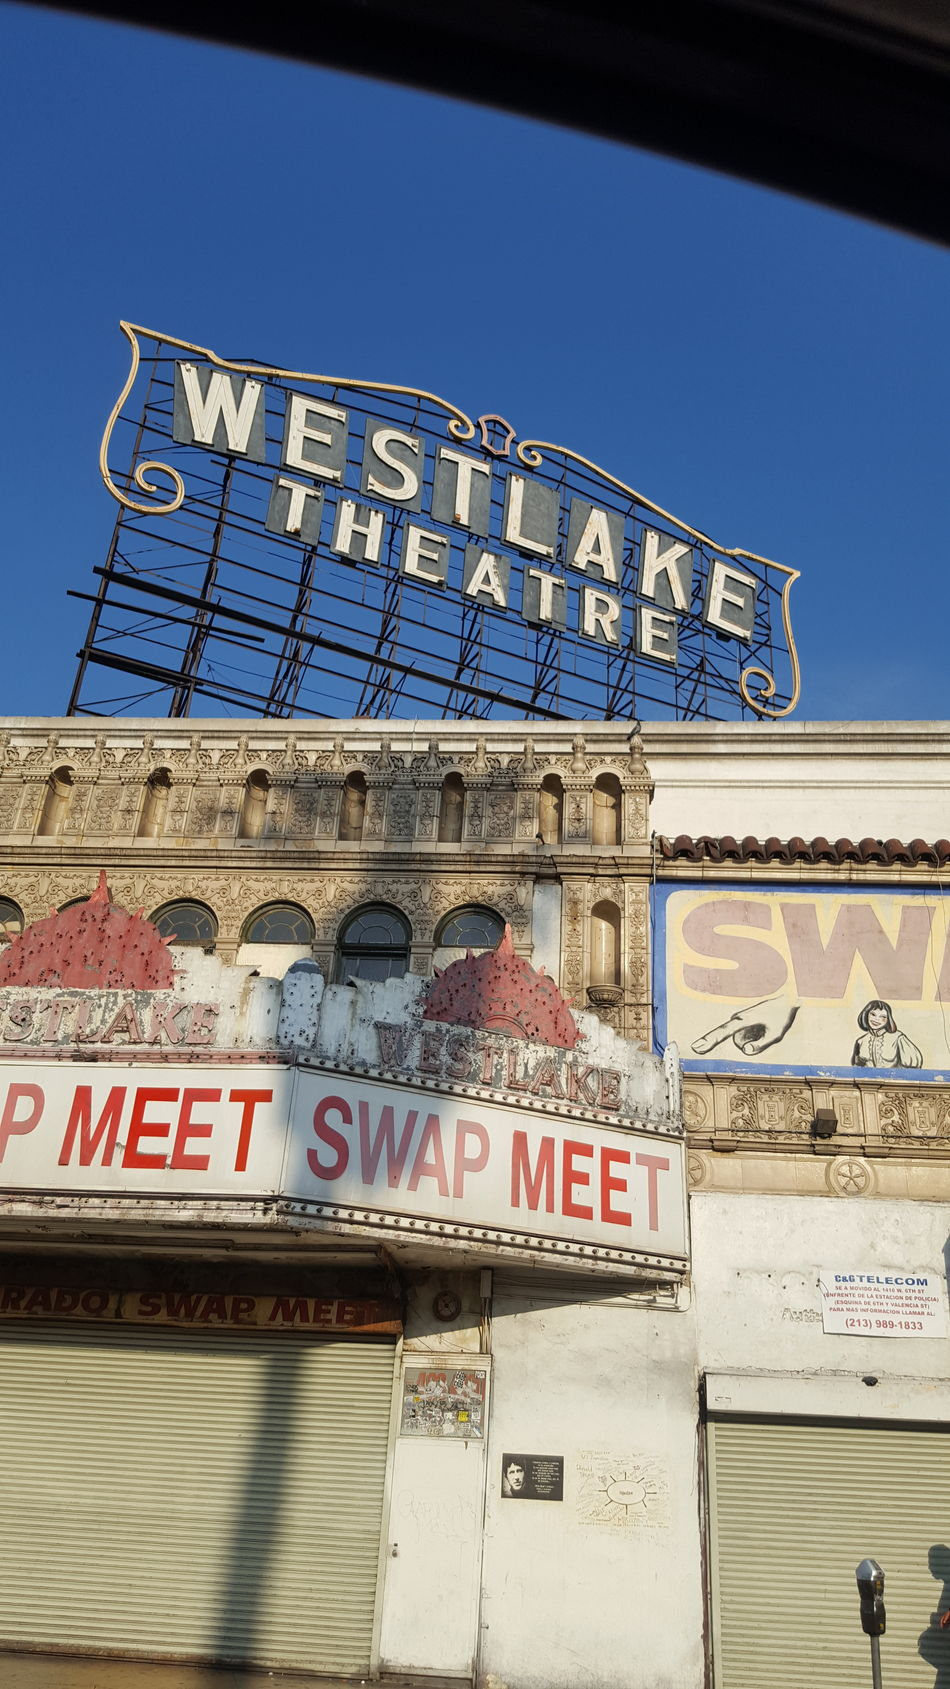 Westlake Theatre Westlake Theatre Swap Meet Point Streetphotography Street Photography The Human Condition Feel The Journey Original Experience